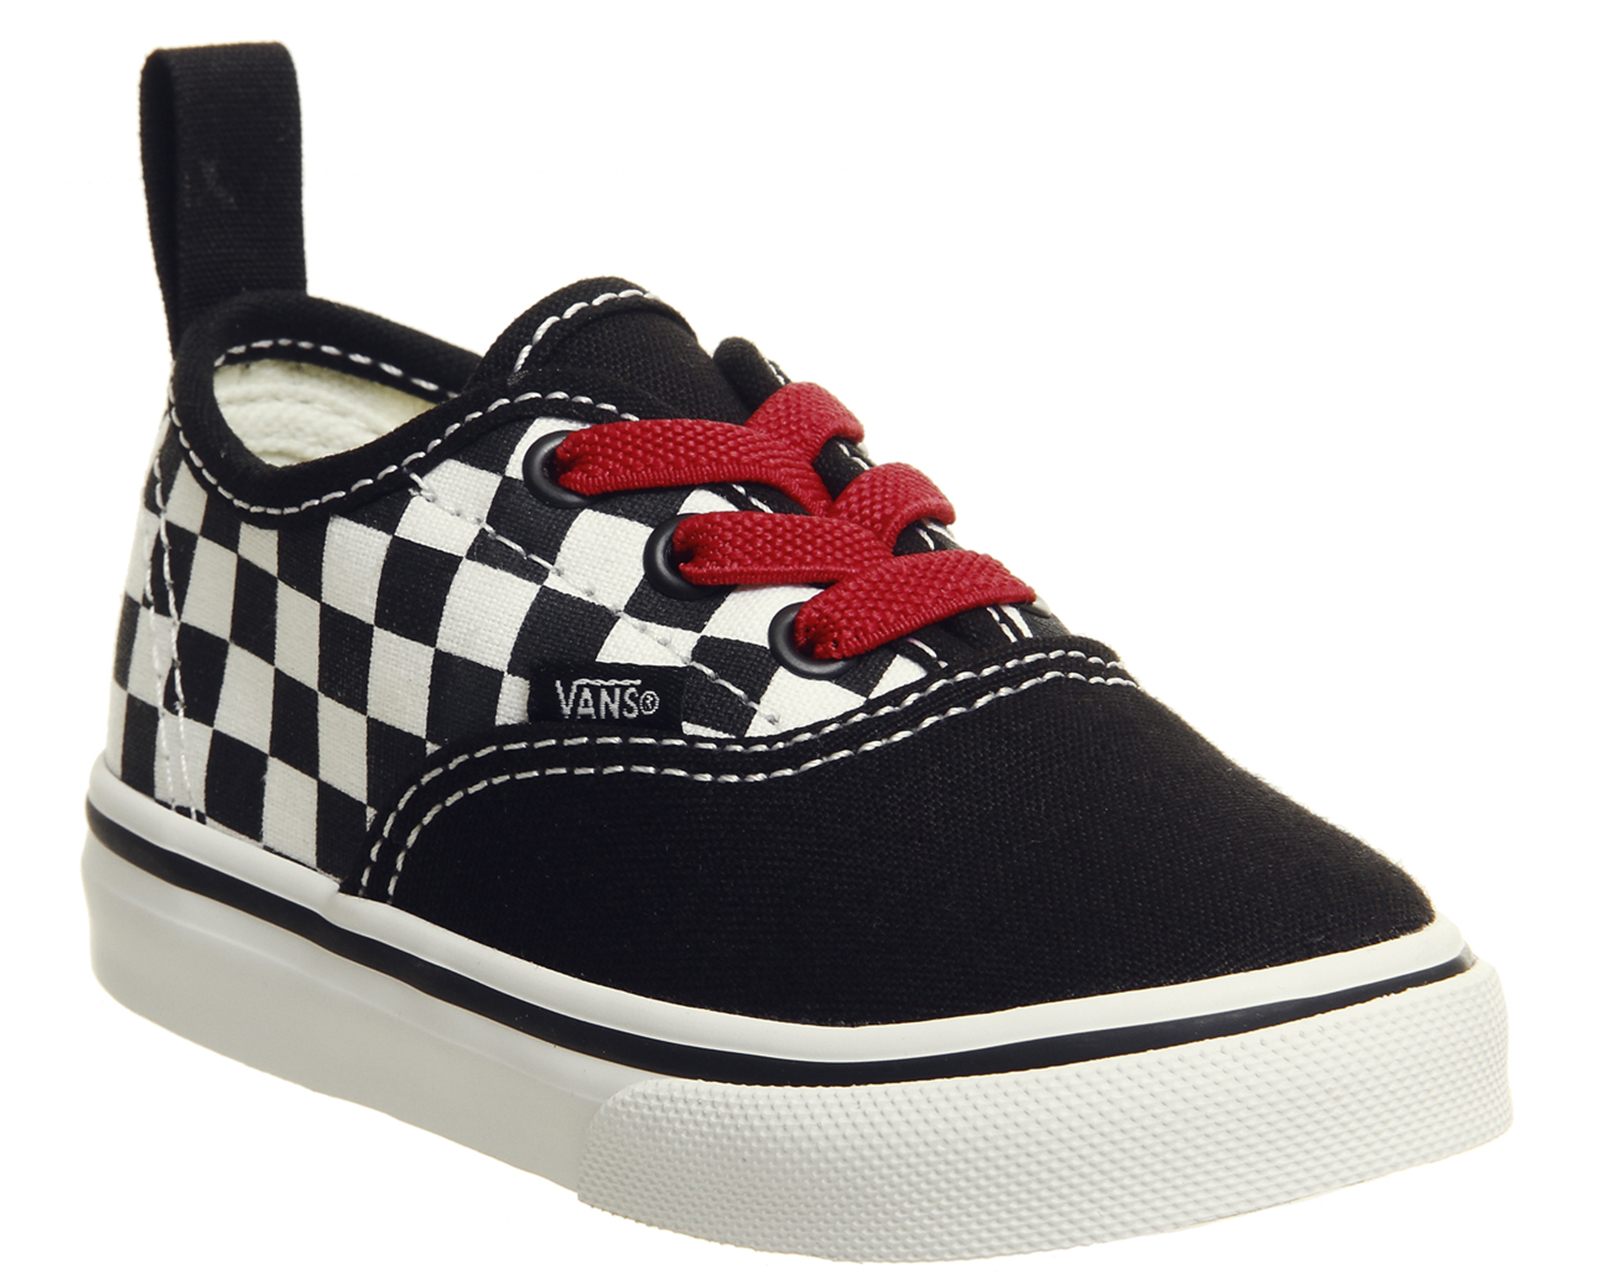 644e3c1a1f7349 Sentinel Kids Vans Authentic Toddlers Trainers Black Red True White  Checkerboard Kids